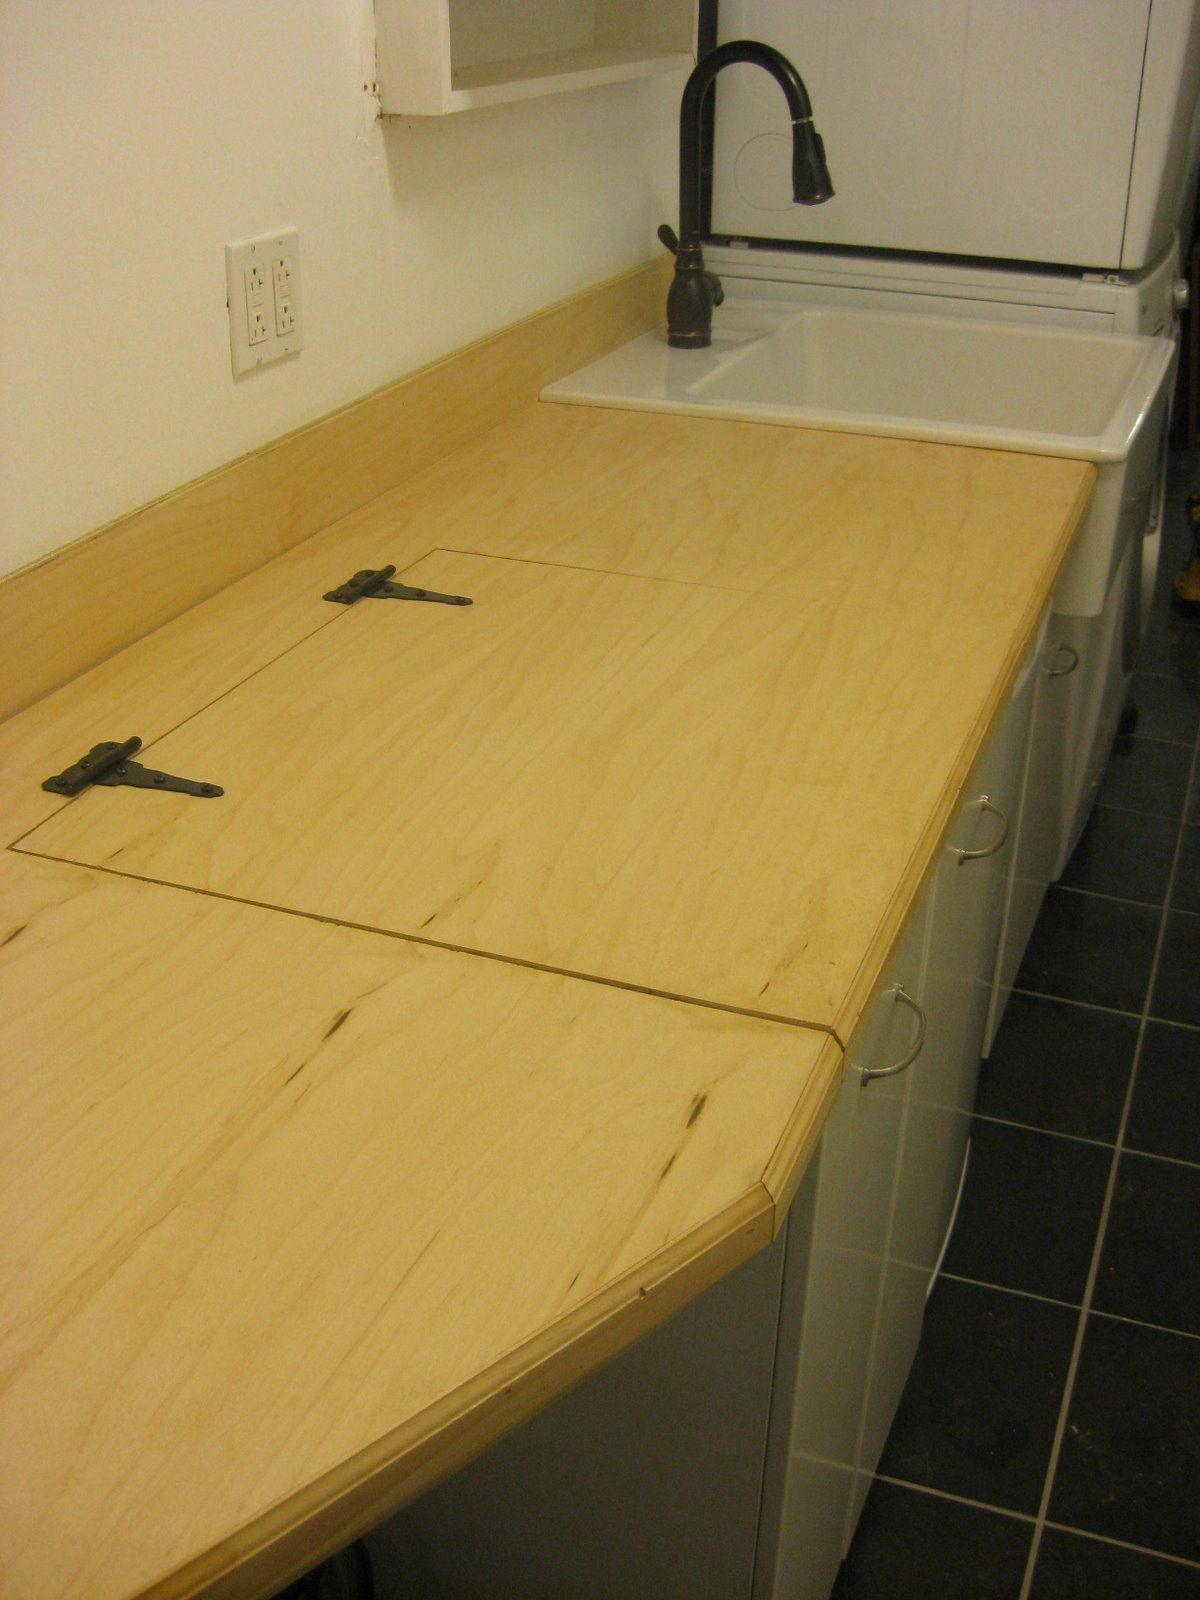 Hinged Countertop For Washer And Dryer Google Search Laundry Room Counter Laundry Room Sink Laundry In Kitchen